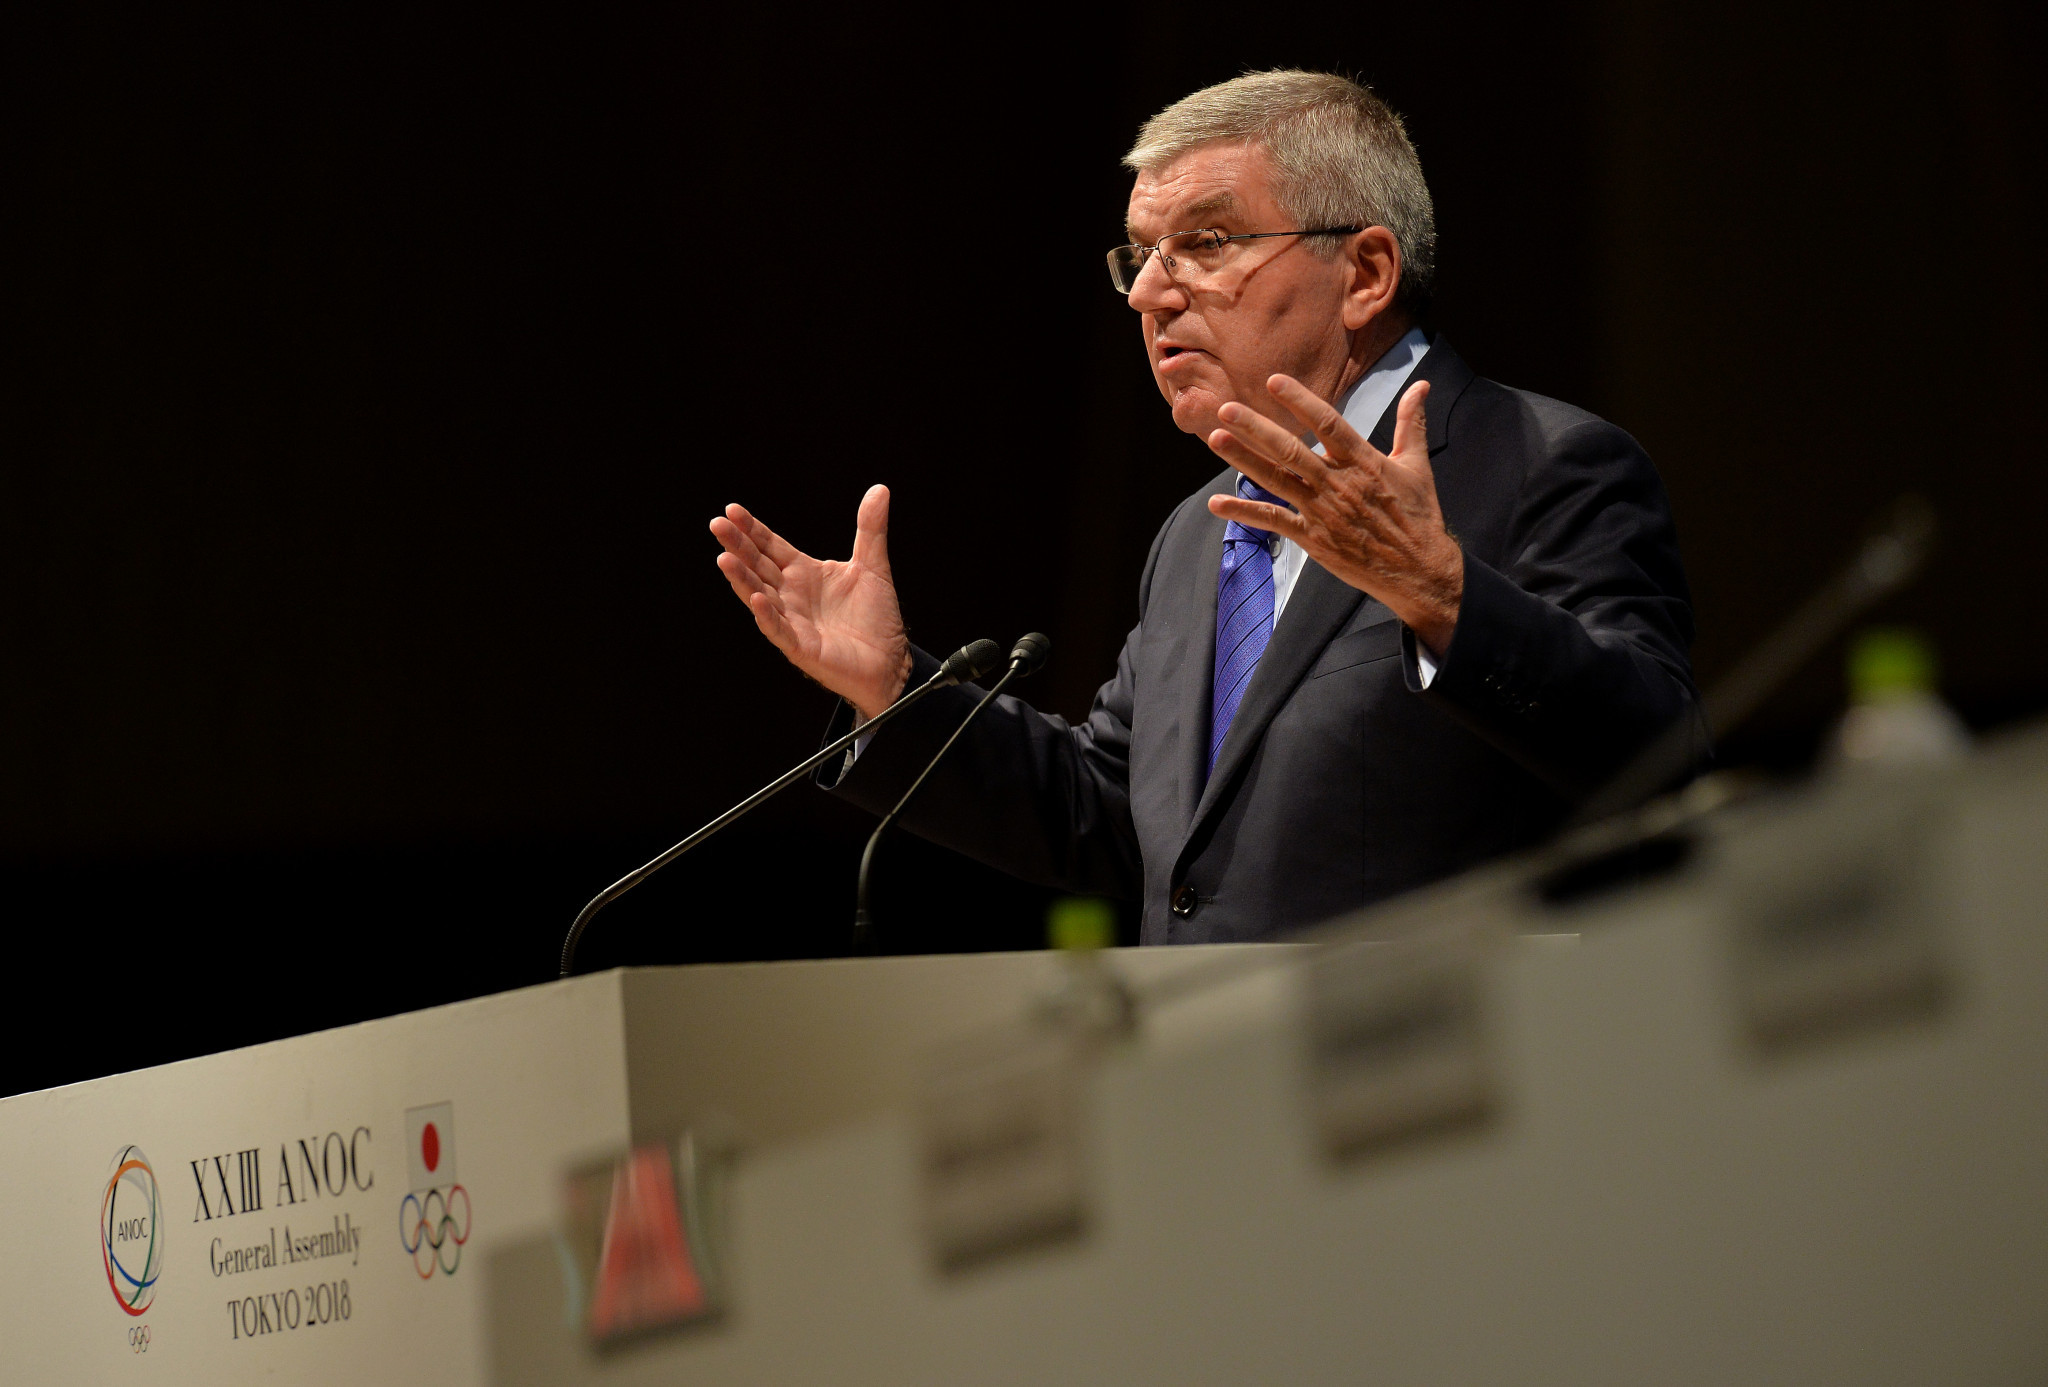 IOC President Thomas Bach launched an impassioned defence of his organisation's Athletes' Commission ©Getty Images